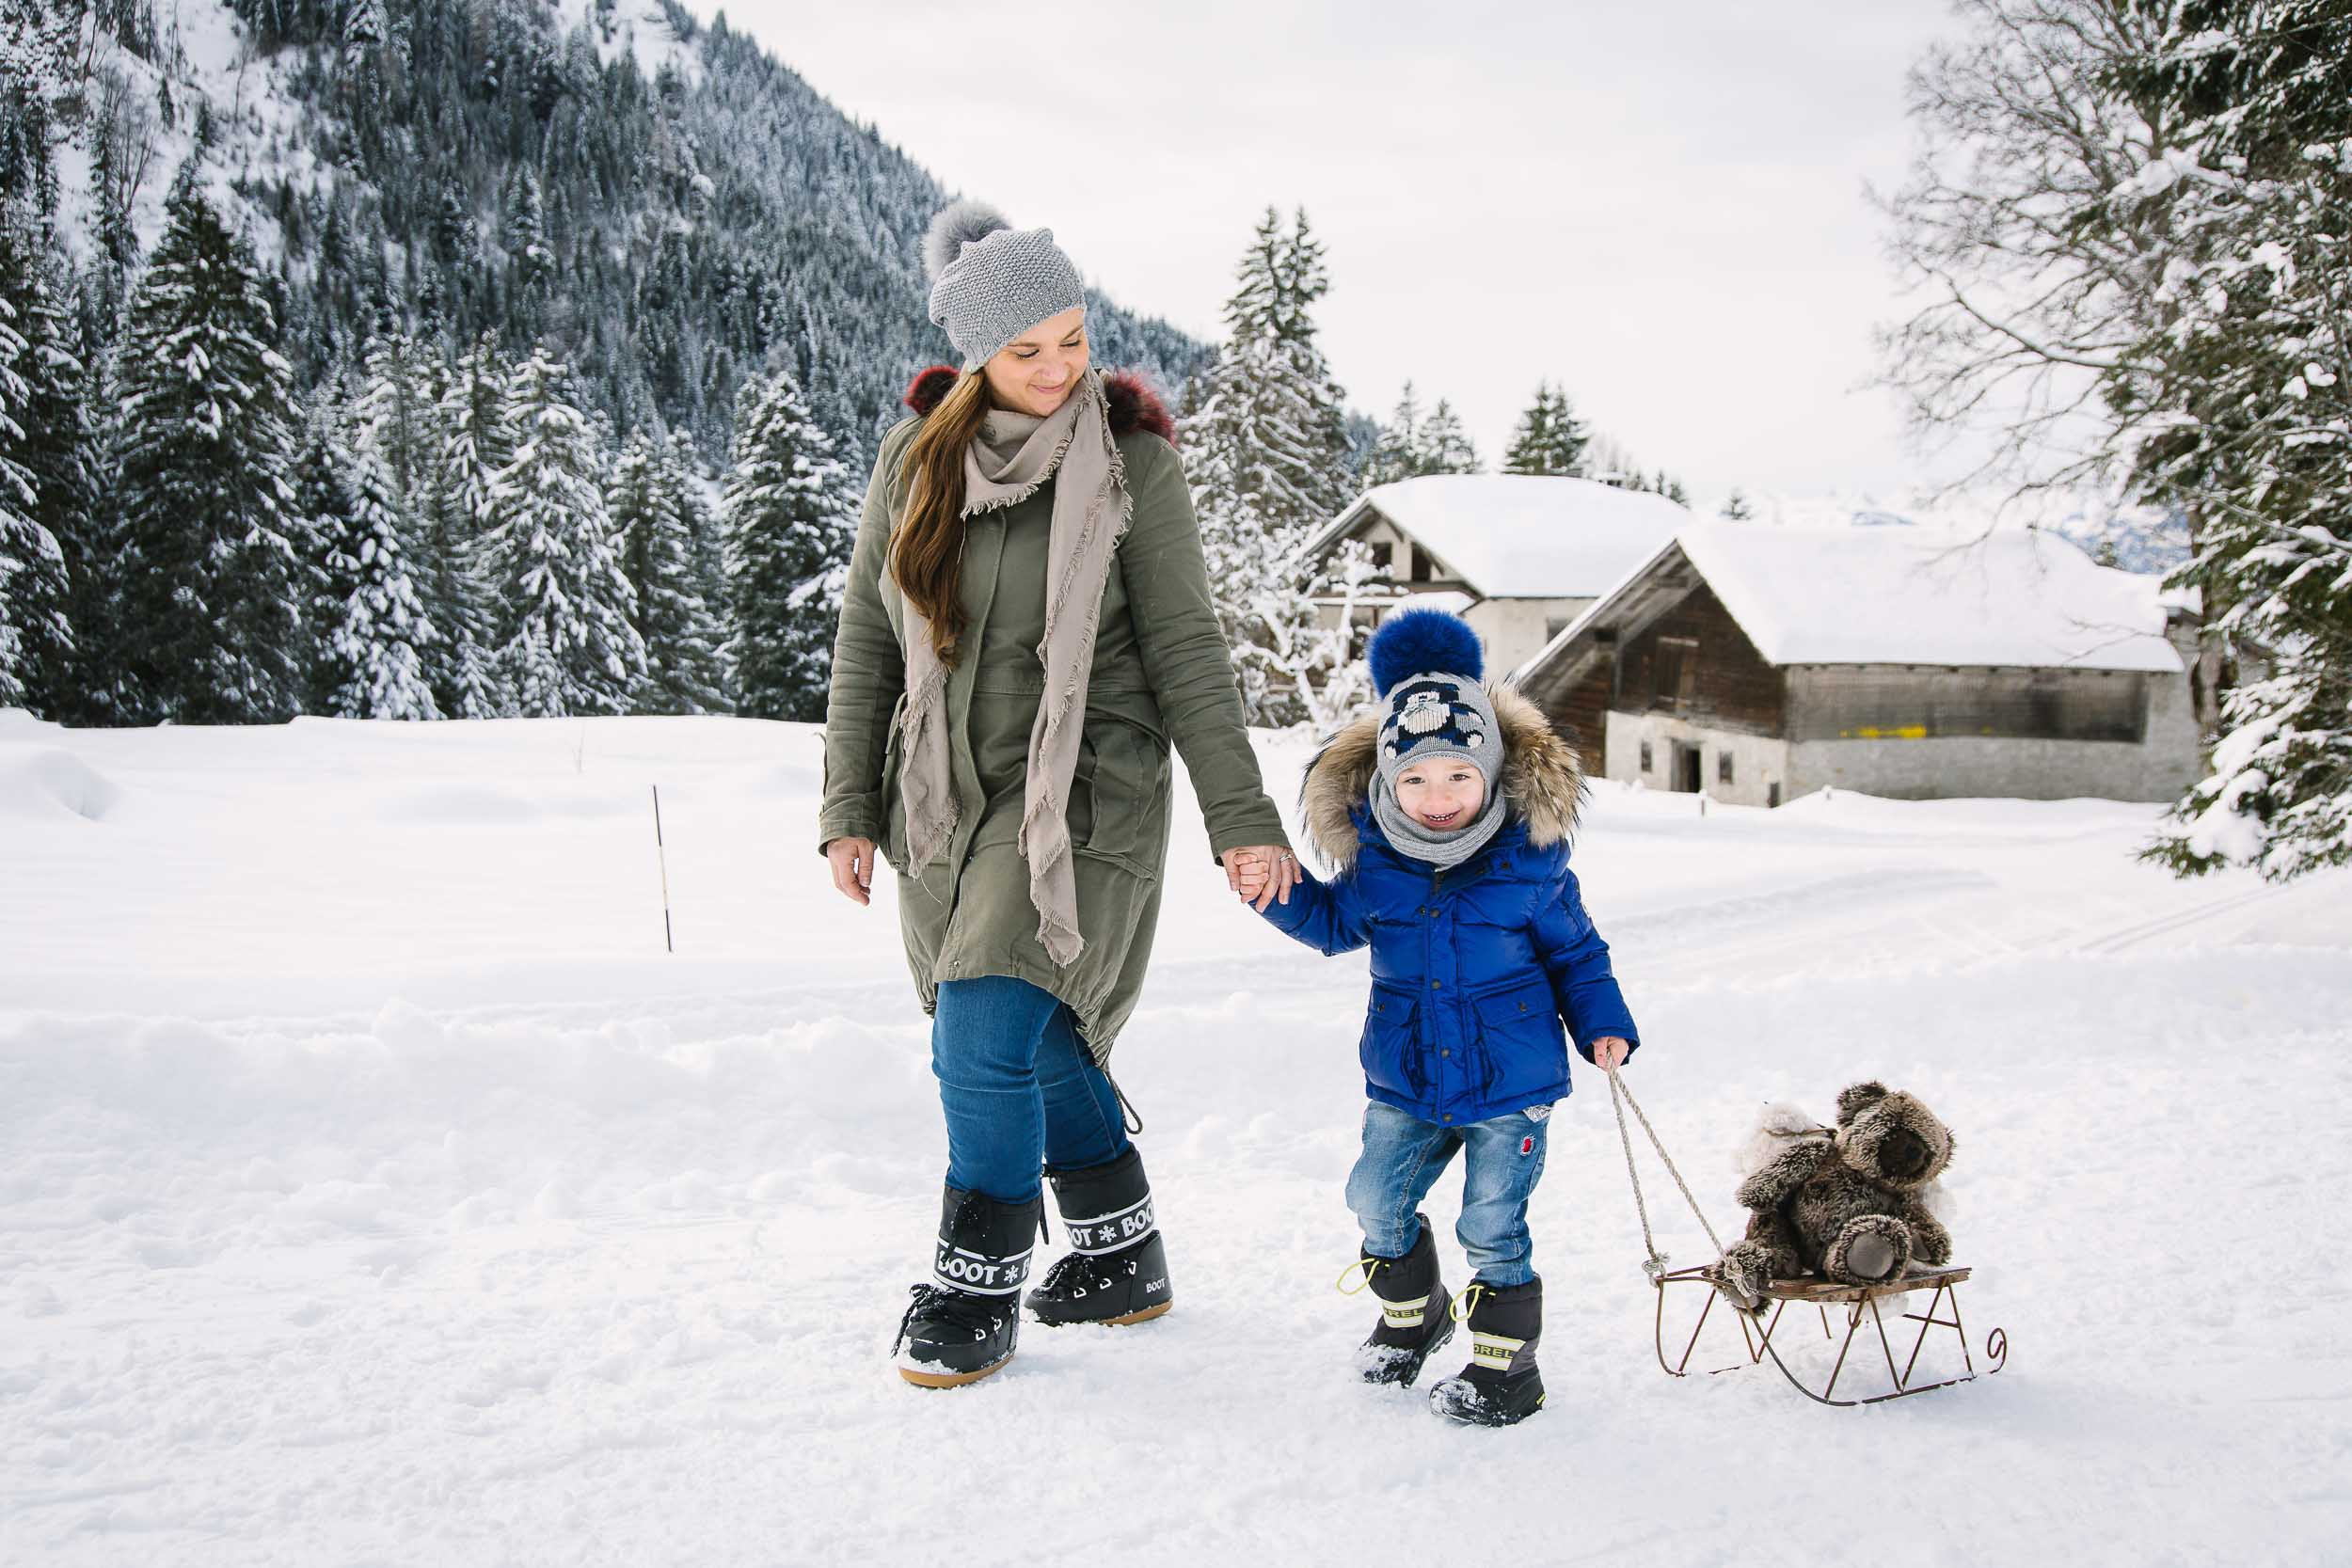 A day out in the mountains is great for sledging, making snowmen and enjoying hot chocolate.